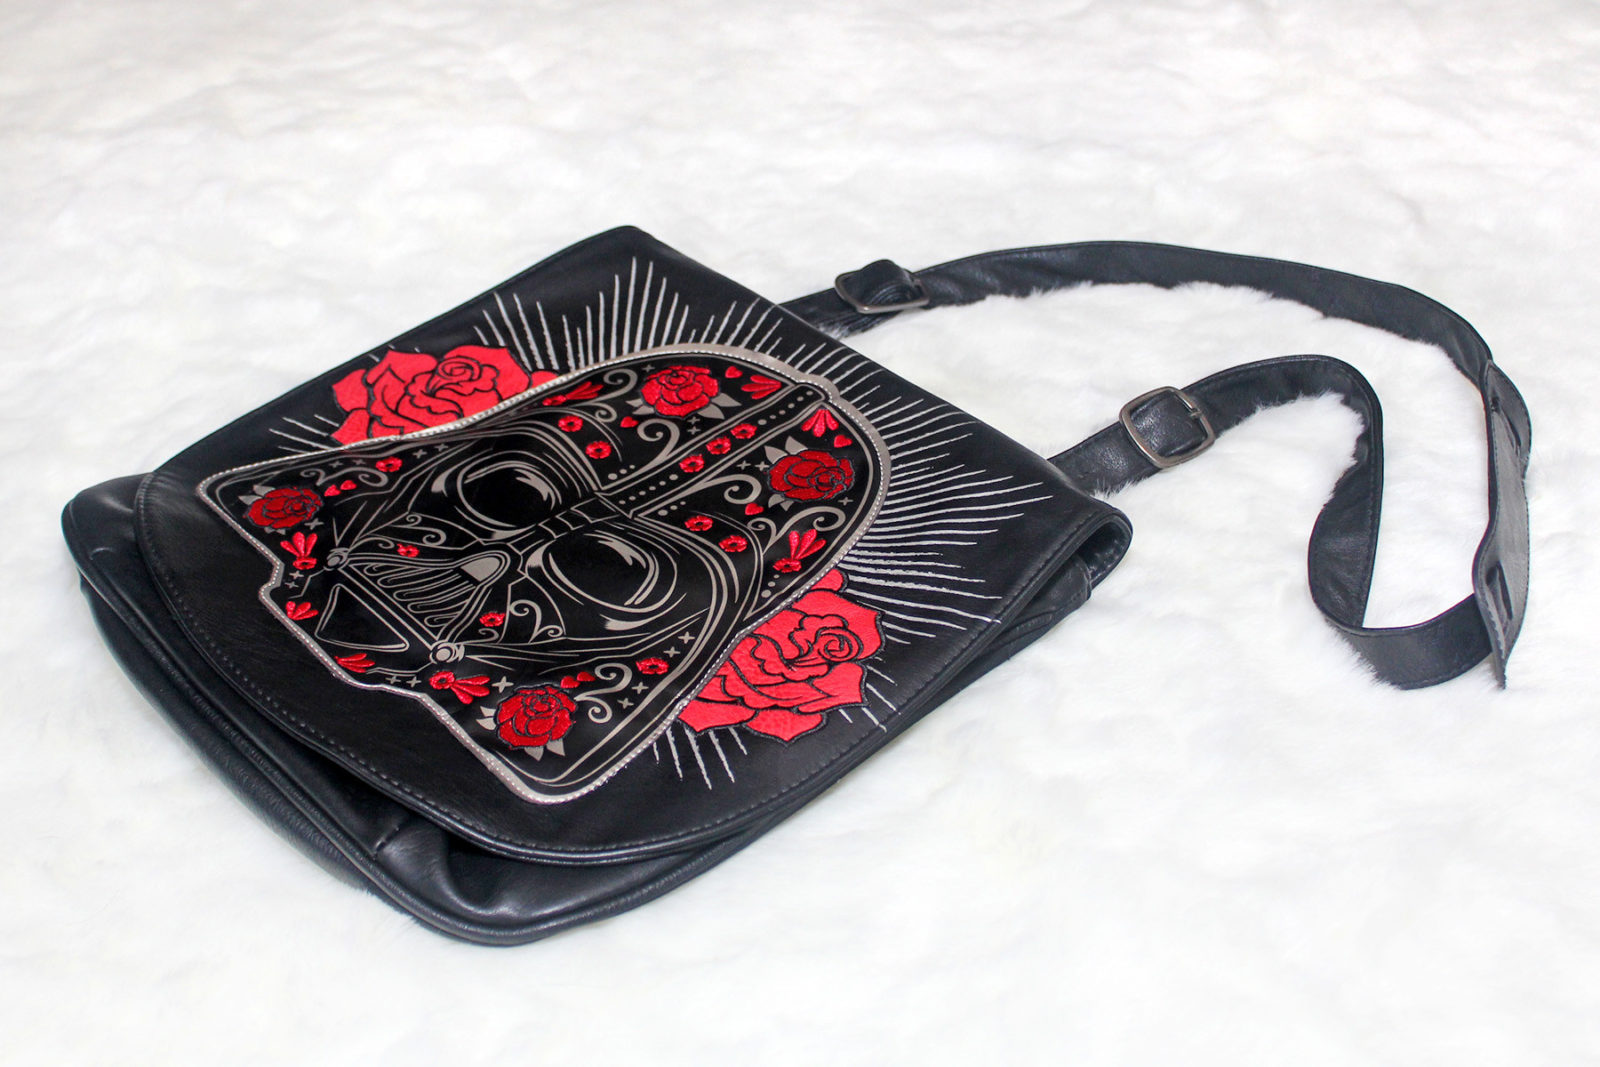 Win this Loungefly Darth Vader handbag!